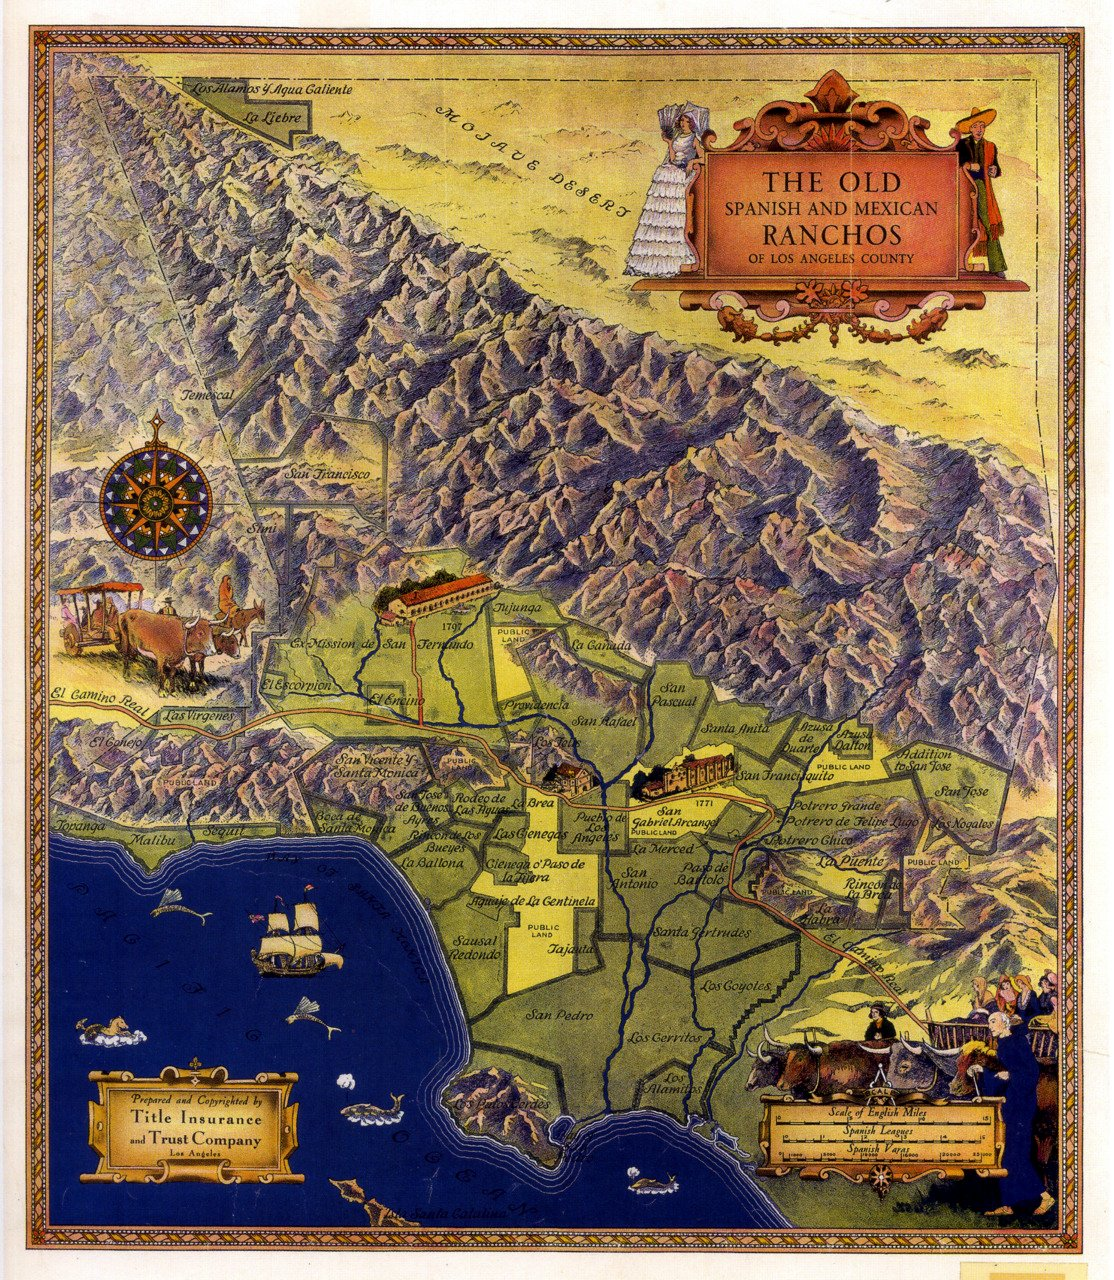 A map of the Spanish missions and ranchos in the Los Angeles. Note the many modern place names that correspond to the original Spanish and Mexican land grants.